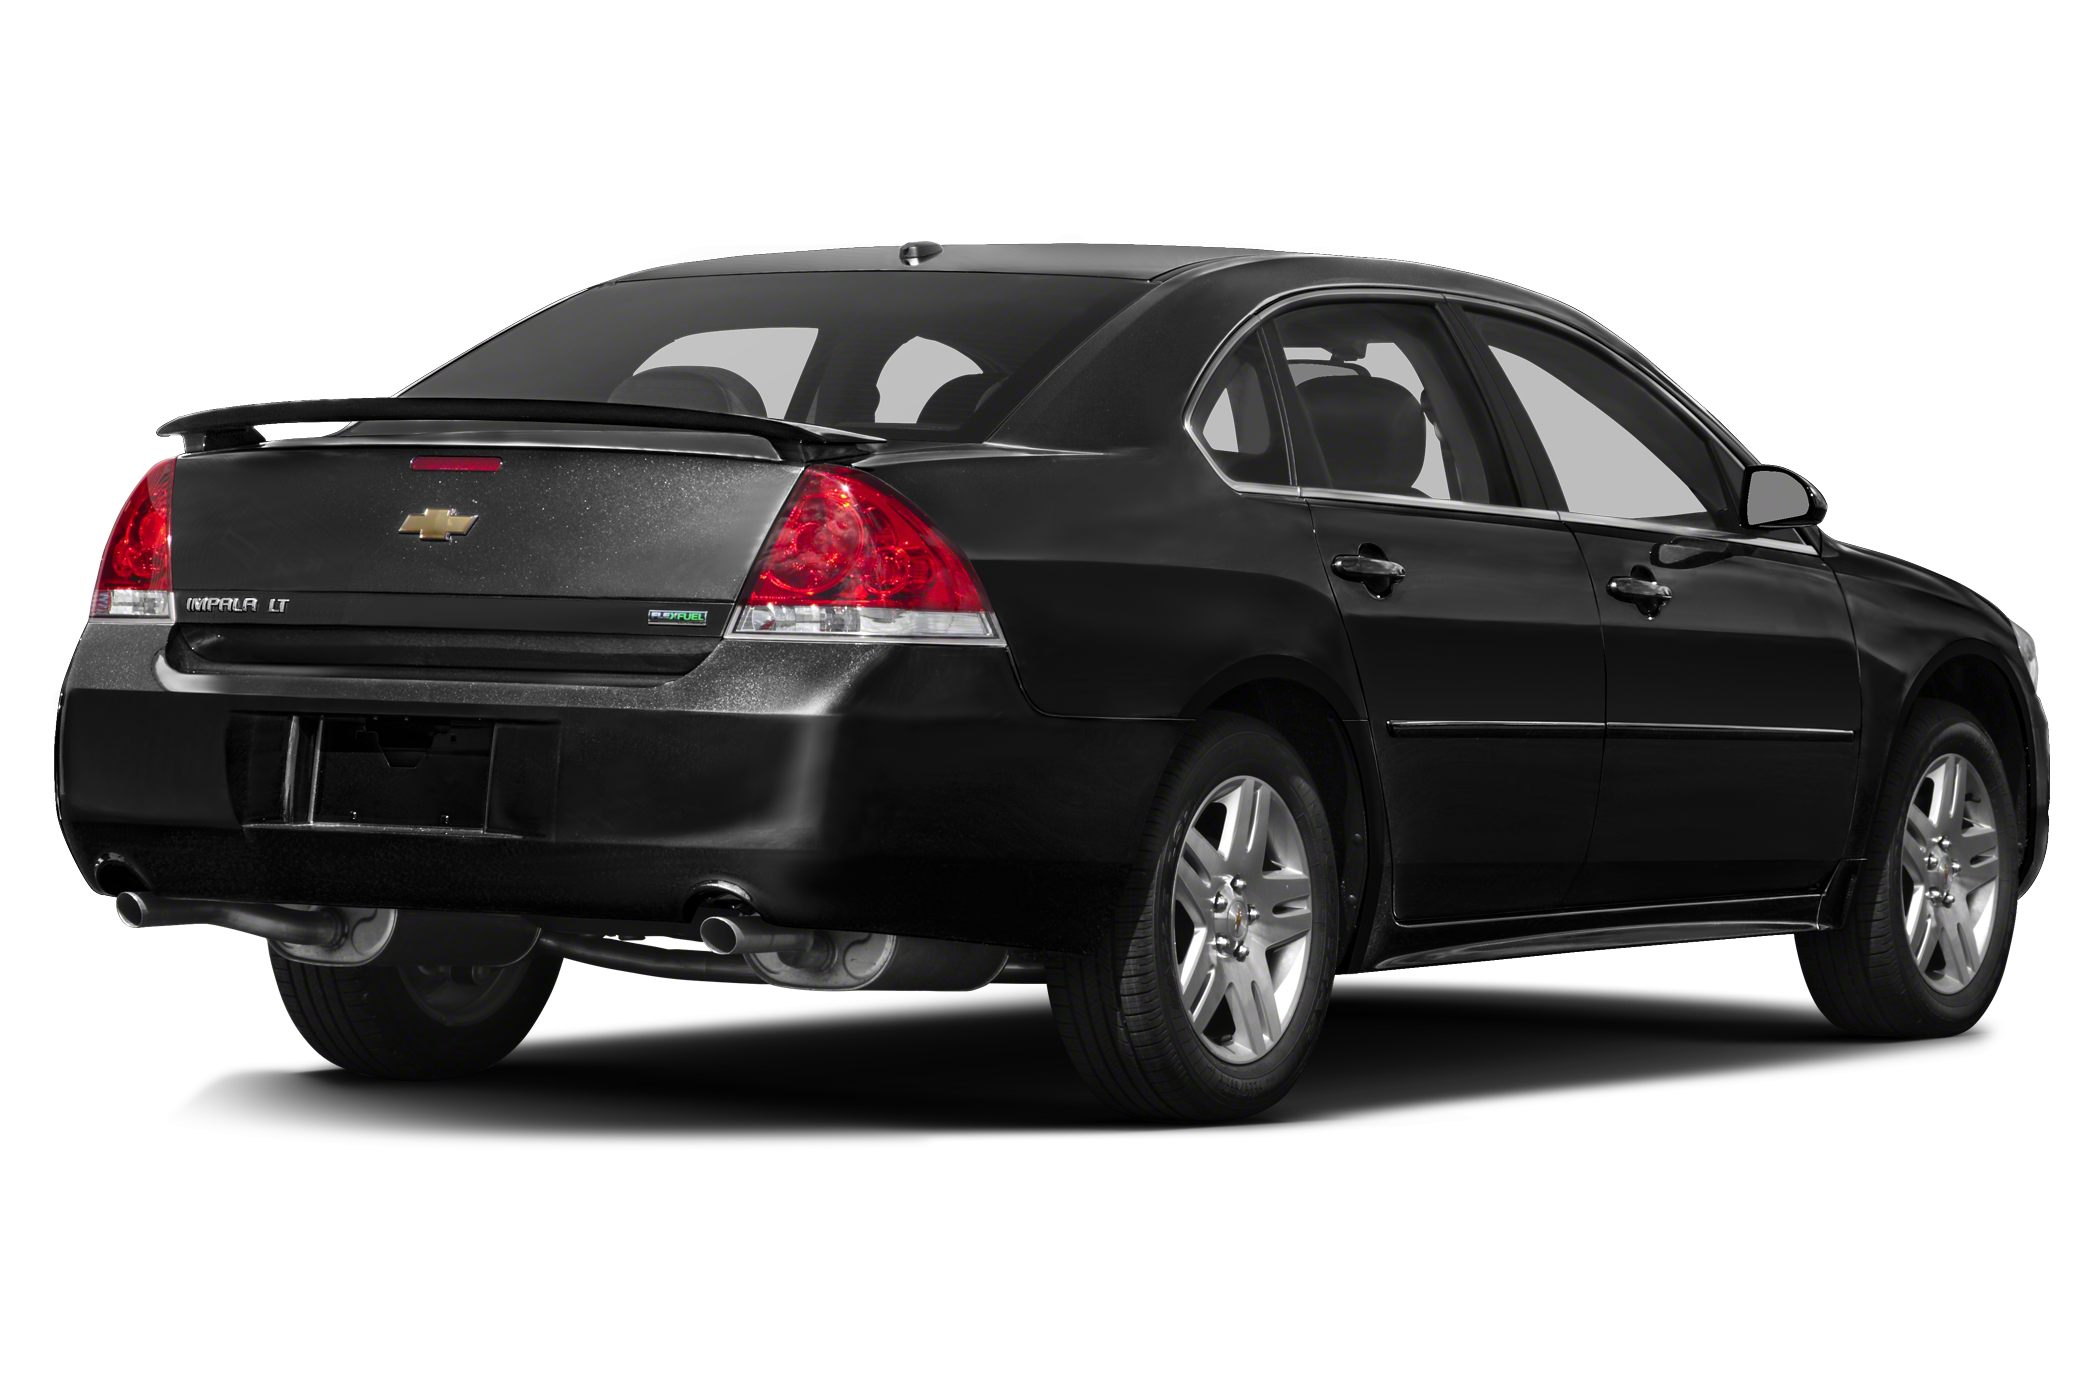 Used 2014 Chevy Impala >> 2014 CHEVROLET IMPALA LIMITED LT | Cars and Vehicles | San Bernardino CA | recycler.com